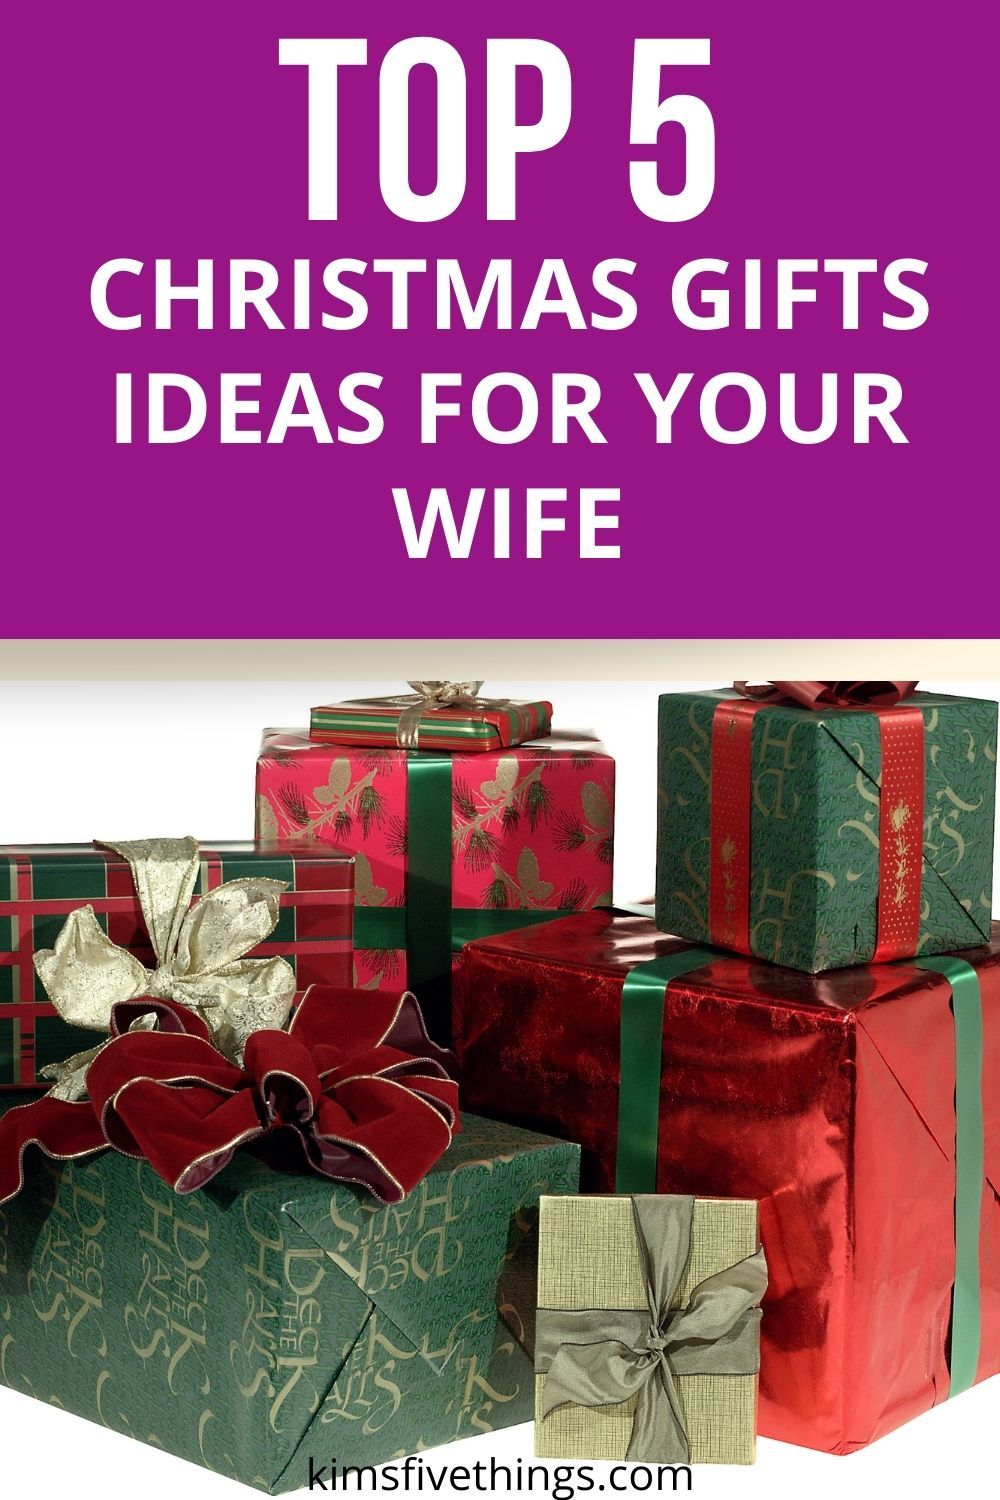 Top 5 Christmas Gifts For Your Wife Best Gifts To Pamper Wife Kims Home Ideas In 2020 Top 5 Christmas Gifts Inexpensive Christmas Gifts Christmas Gift For You